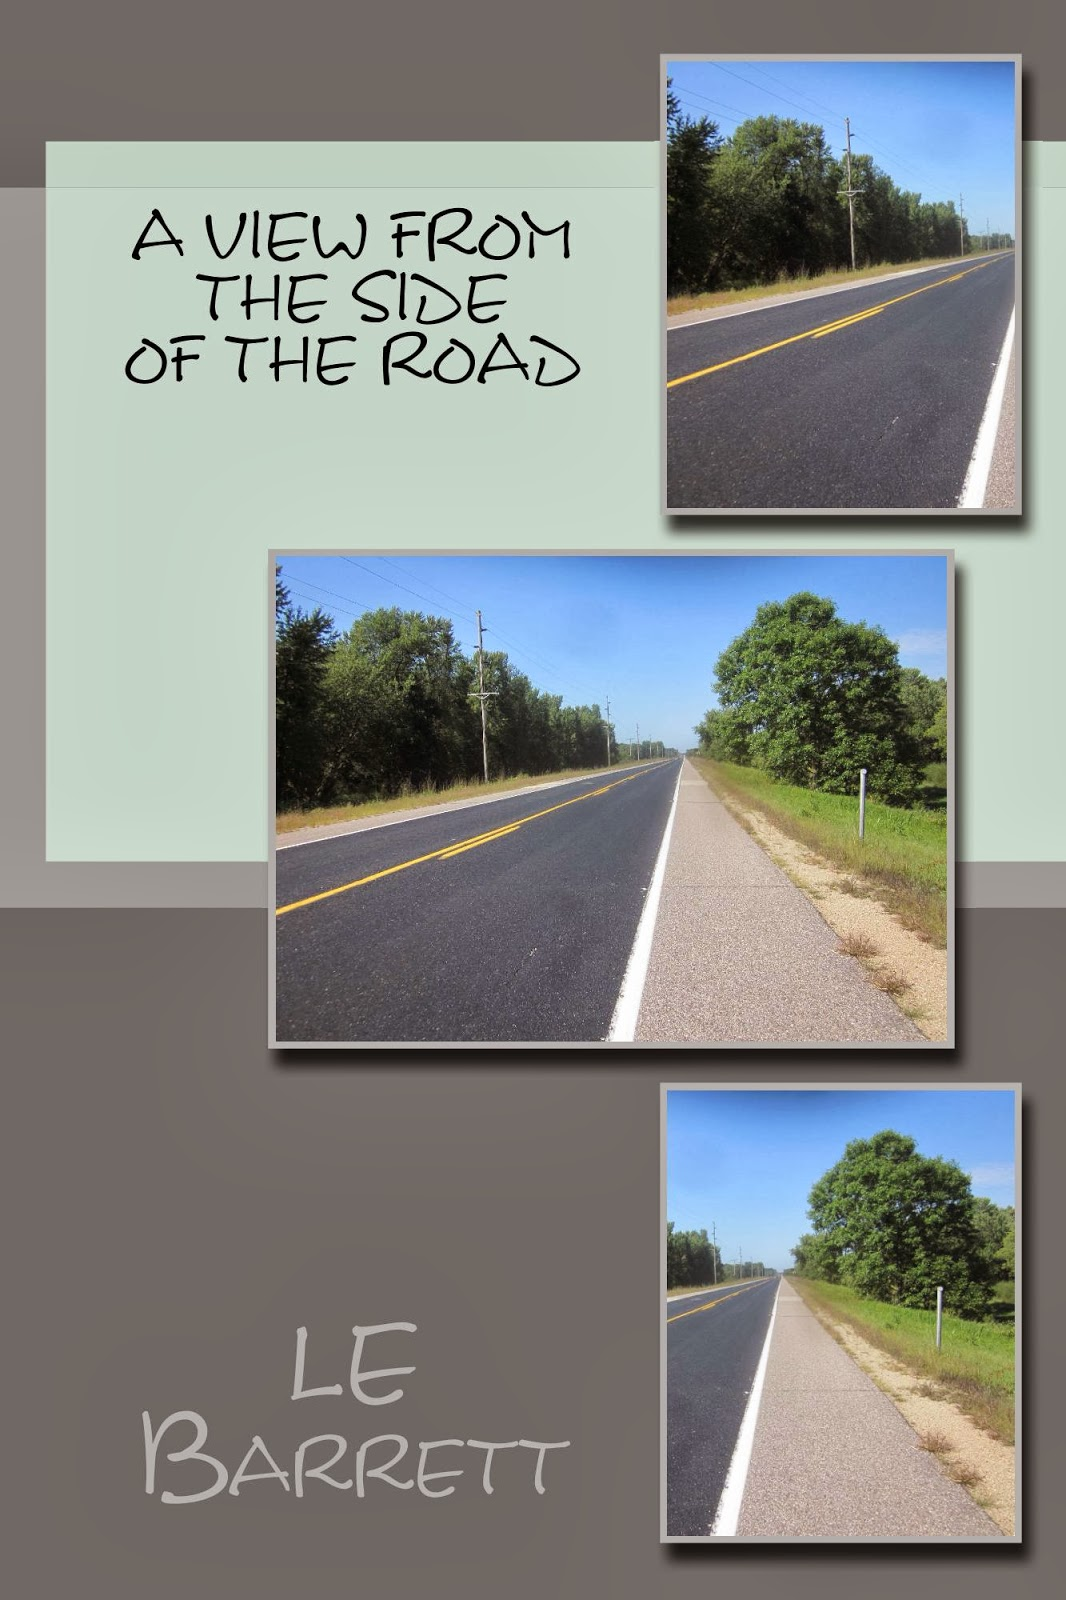 http://www.amazon.com/View-From-The-Side-Road-ebook/dp/B00IACRFGM/ref=sr_1_1?ie=UTF8&qid=1393604321&sr=8-1&keywords=le+barrett